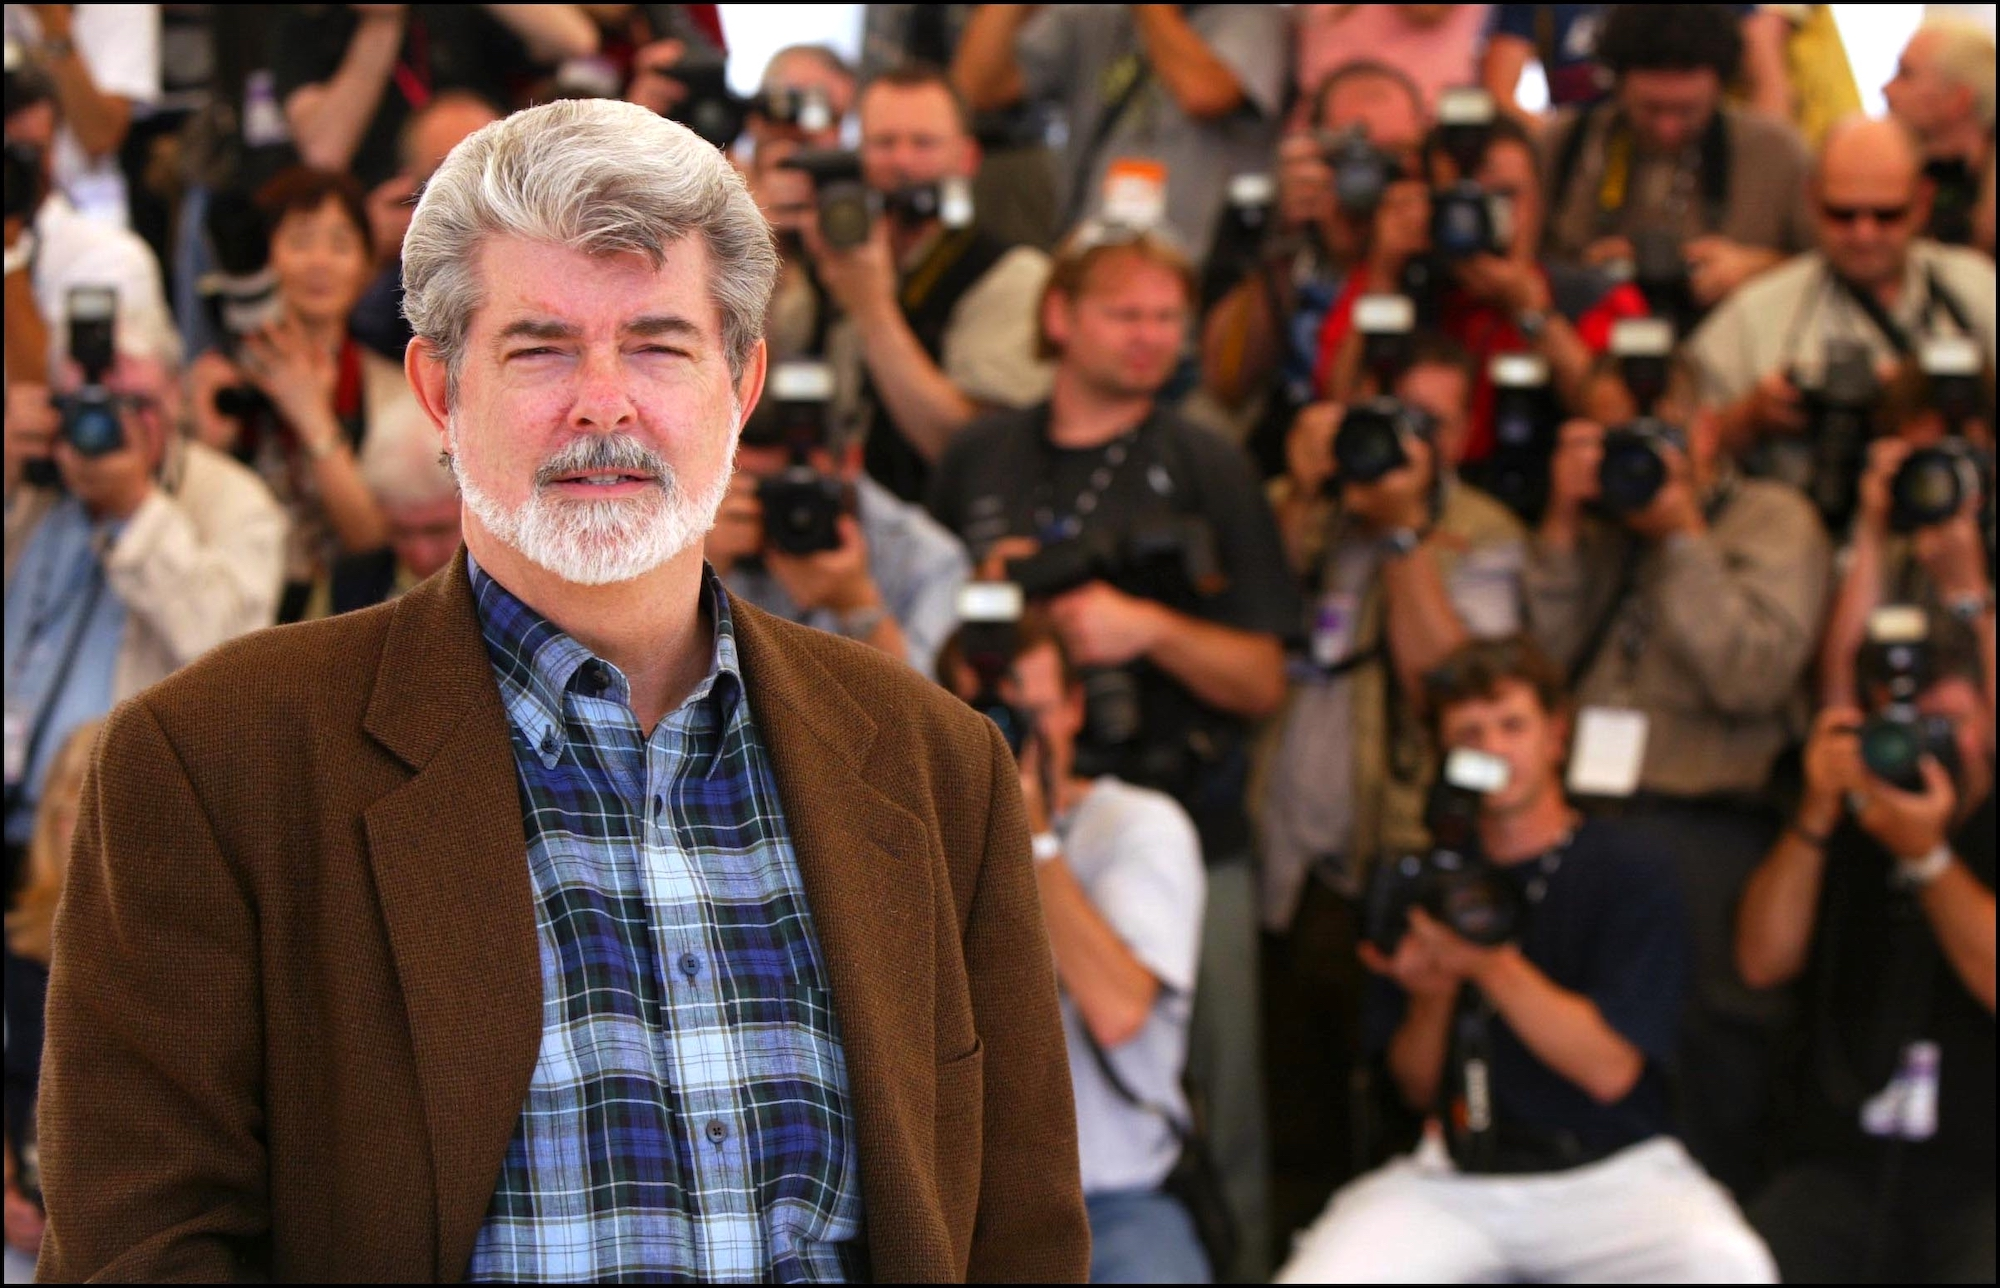 George Lucas at the 55th Cannes for 'Star Wars: Episode II: Attack of the Clones' in Cannes, France, May 16, 2002.